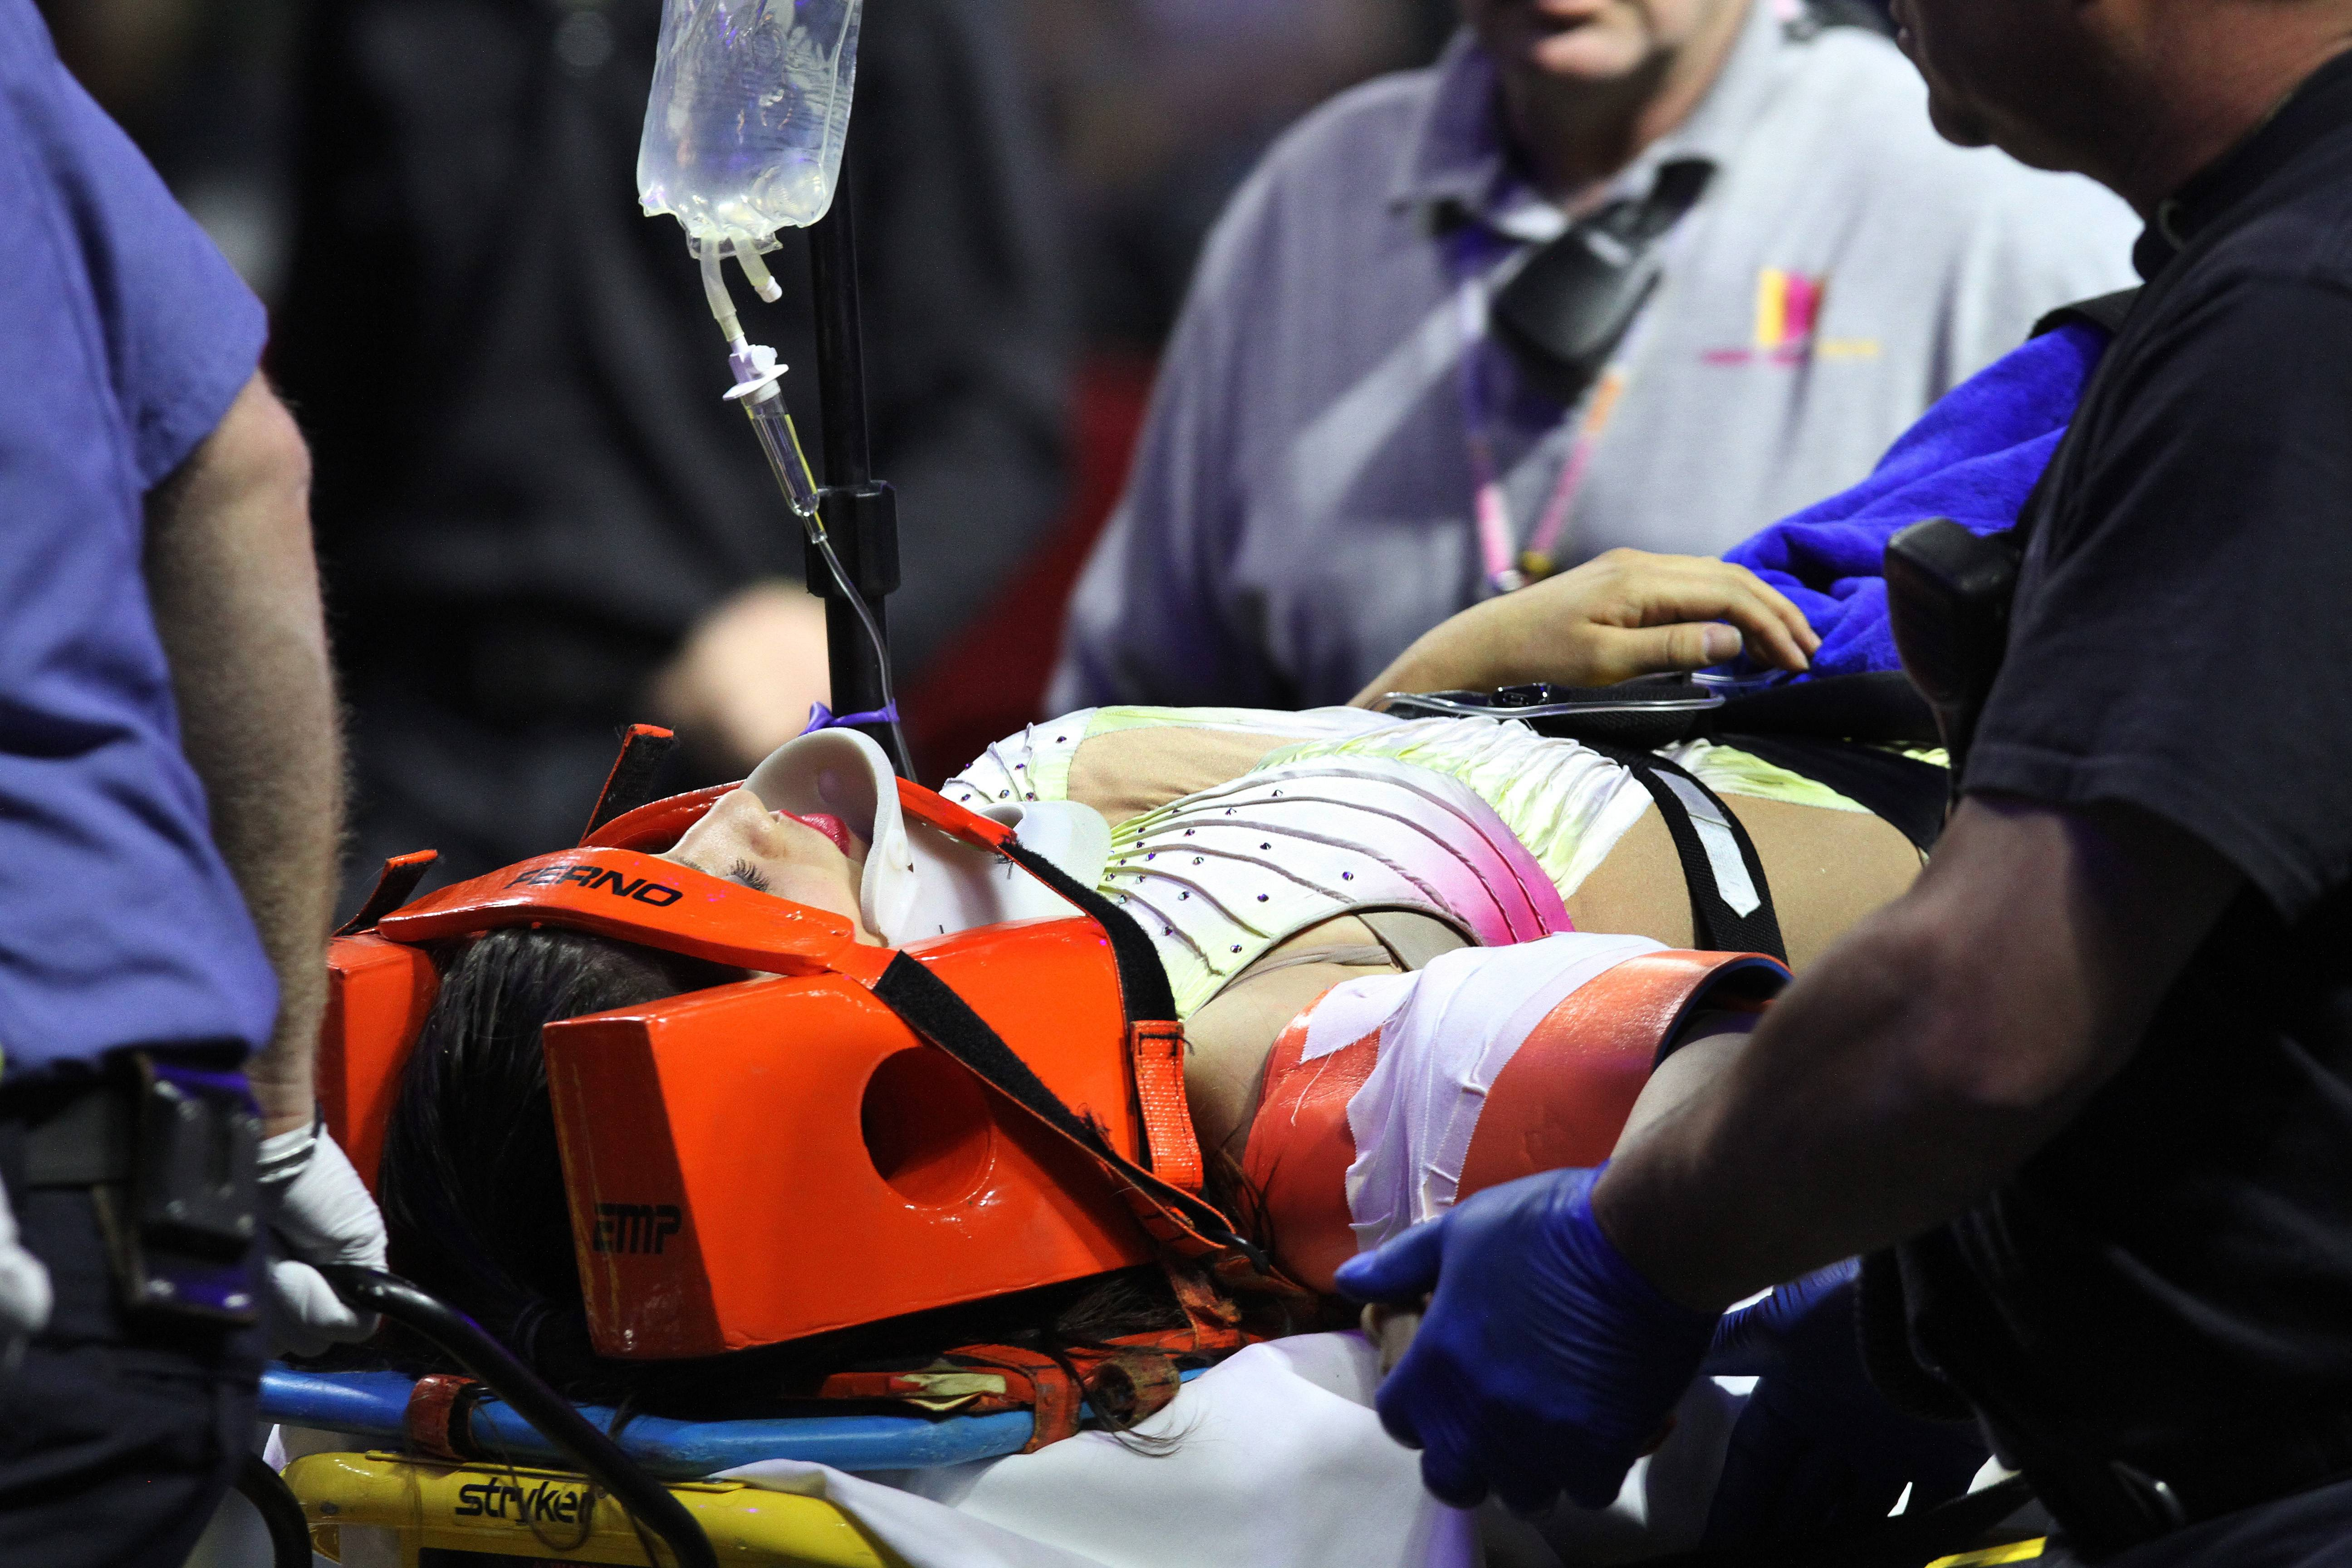 An injured female performer is lifted onto a stretcher after a platform collapsed during an aerial hair-hanging stunt at the Ringling Brothers and Barnum and Bailey Circus Sunday in Providence, R.I. At least nine performers were seriously injured in the fall, including a dancer below.